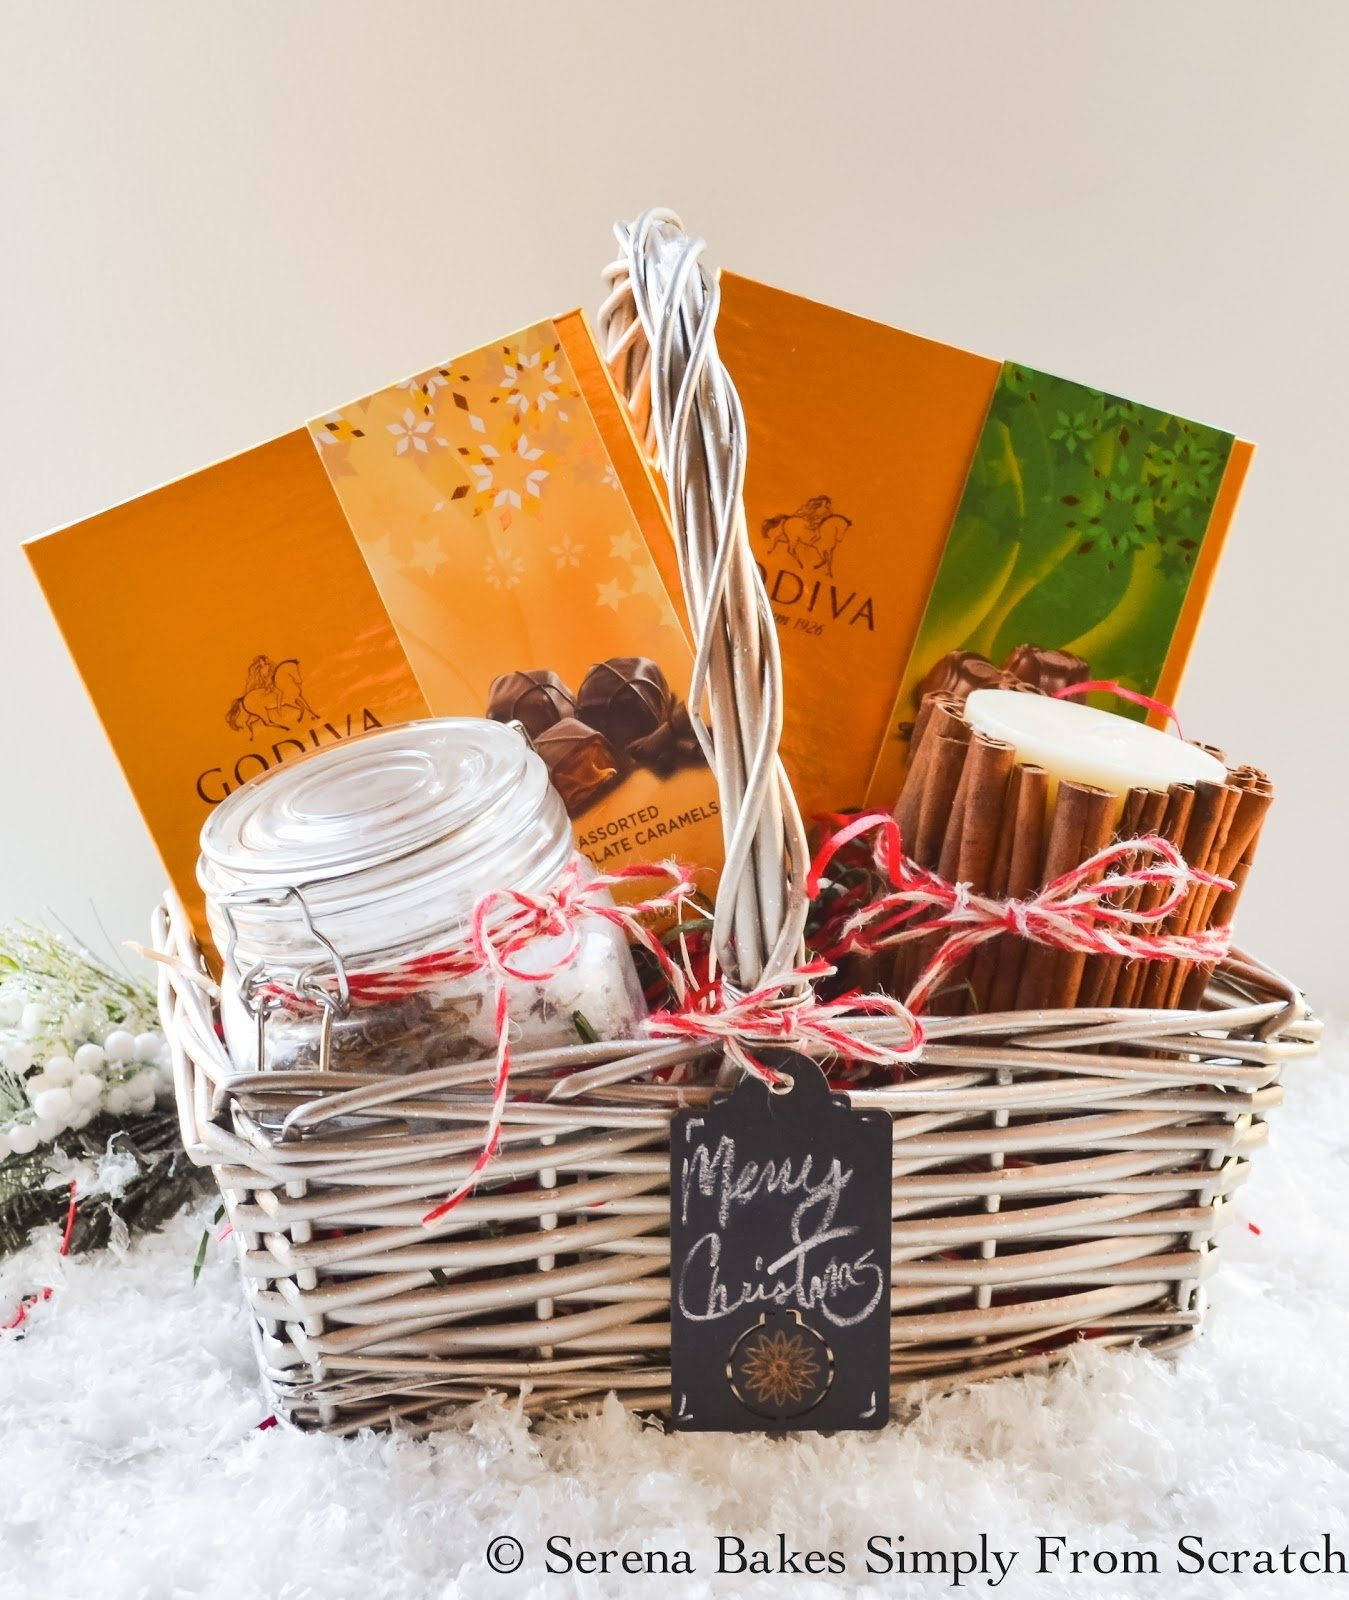 10 Attractive Gift Basket Ideas For Men holiday gift basket ideas serena bakes simply from scratch 2020